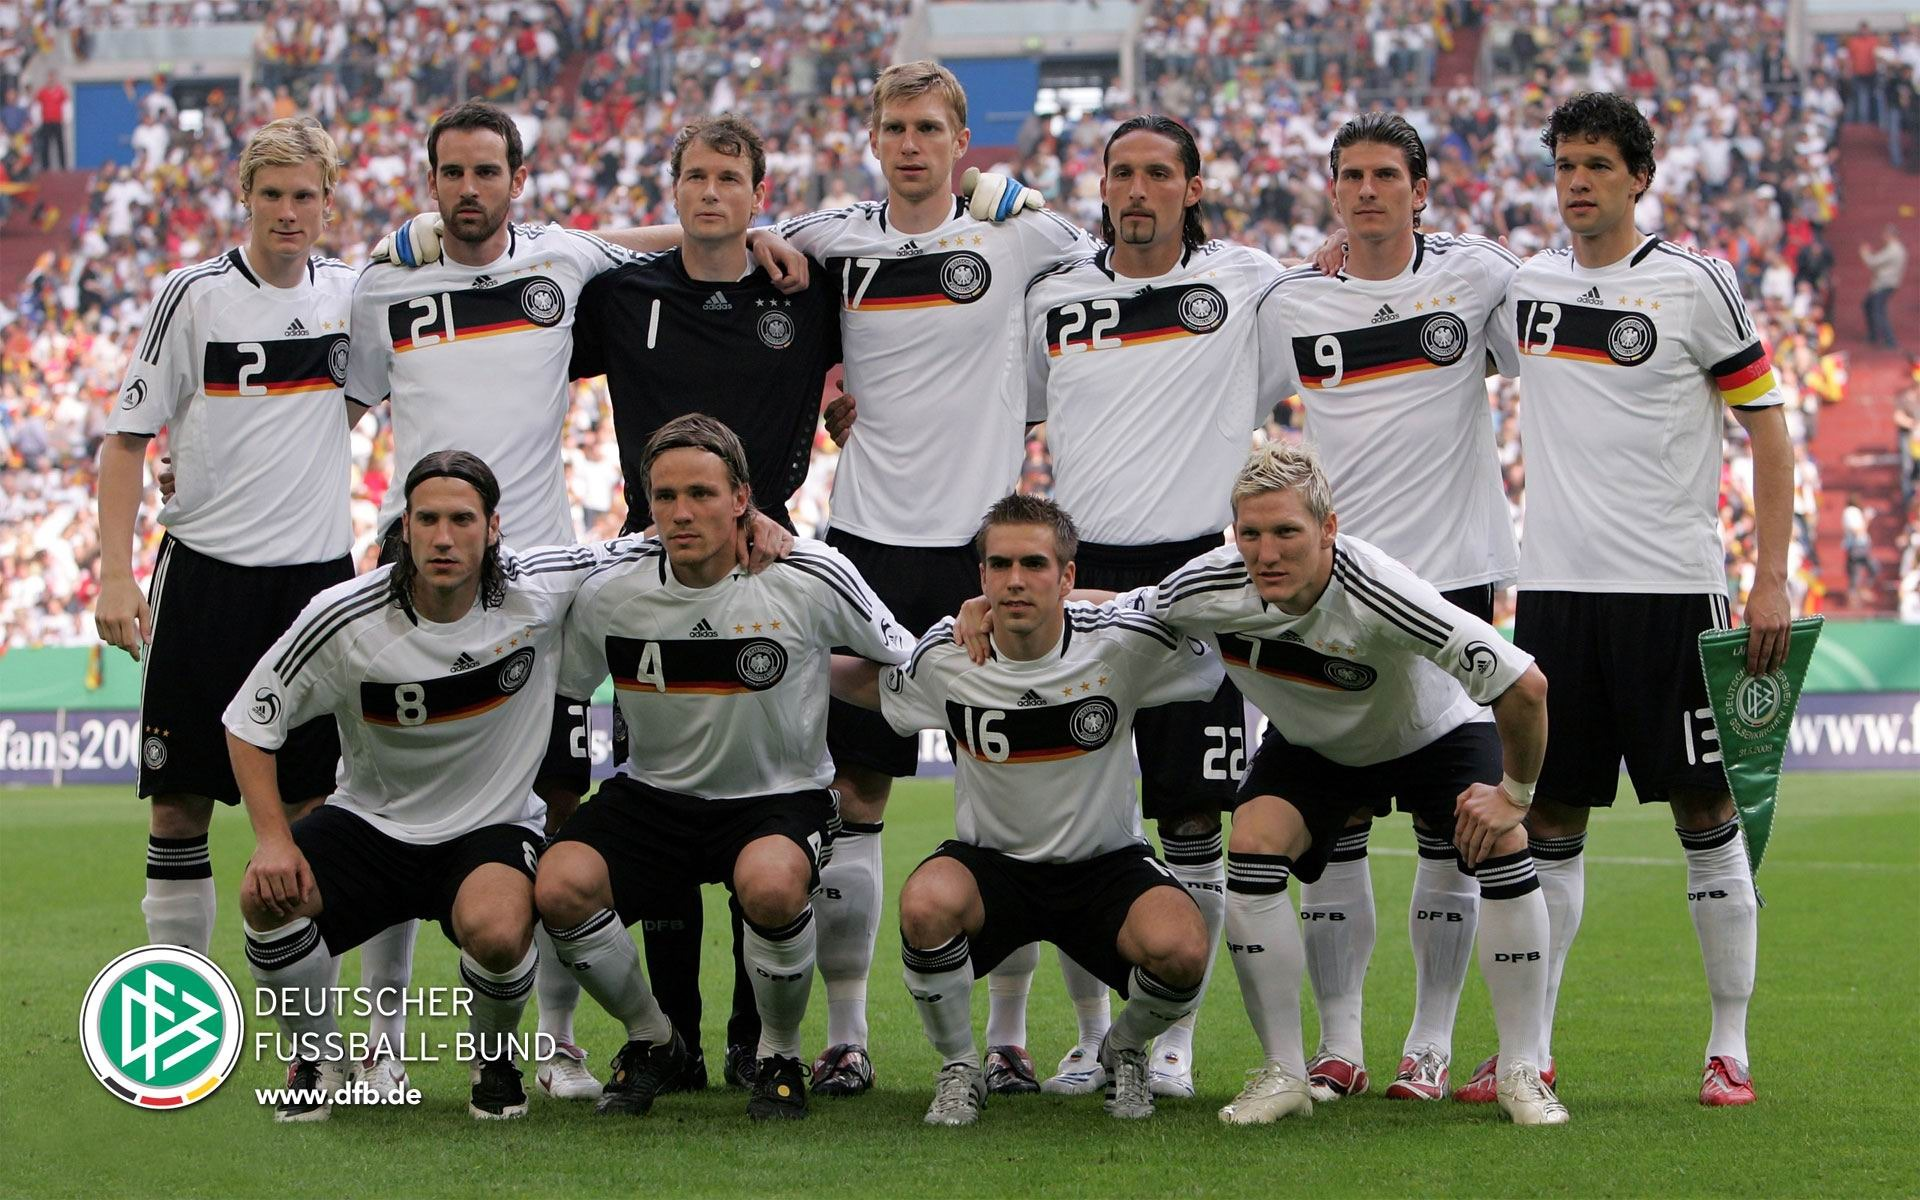 Germany Soccer Team Euro 2012 Wallpaper Preview